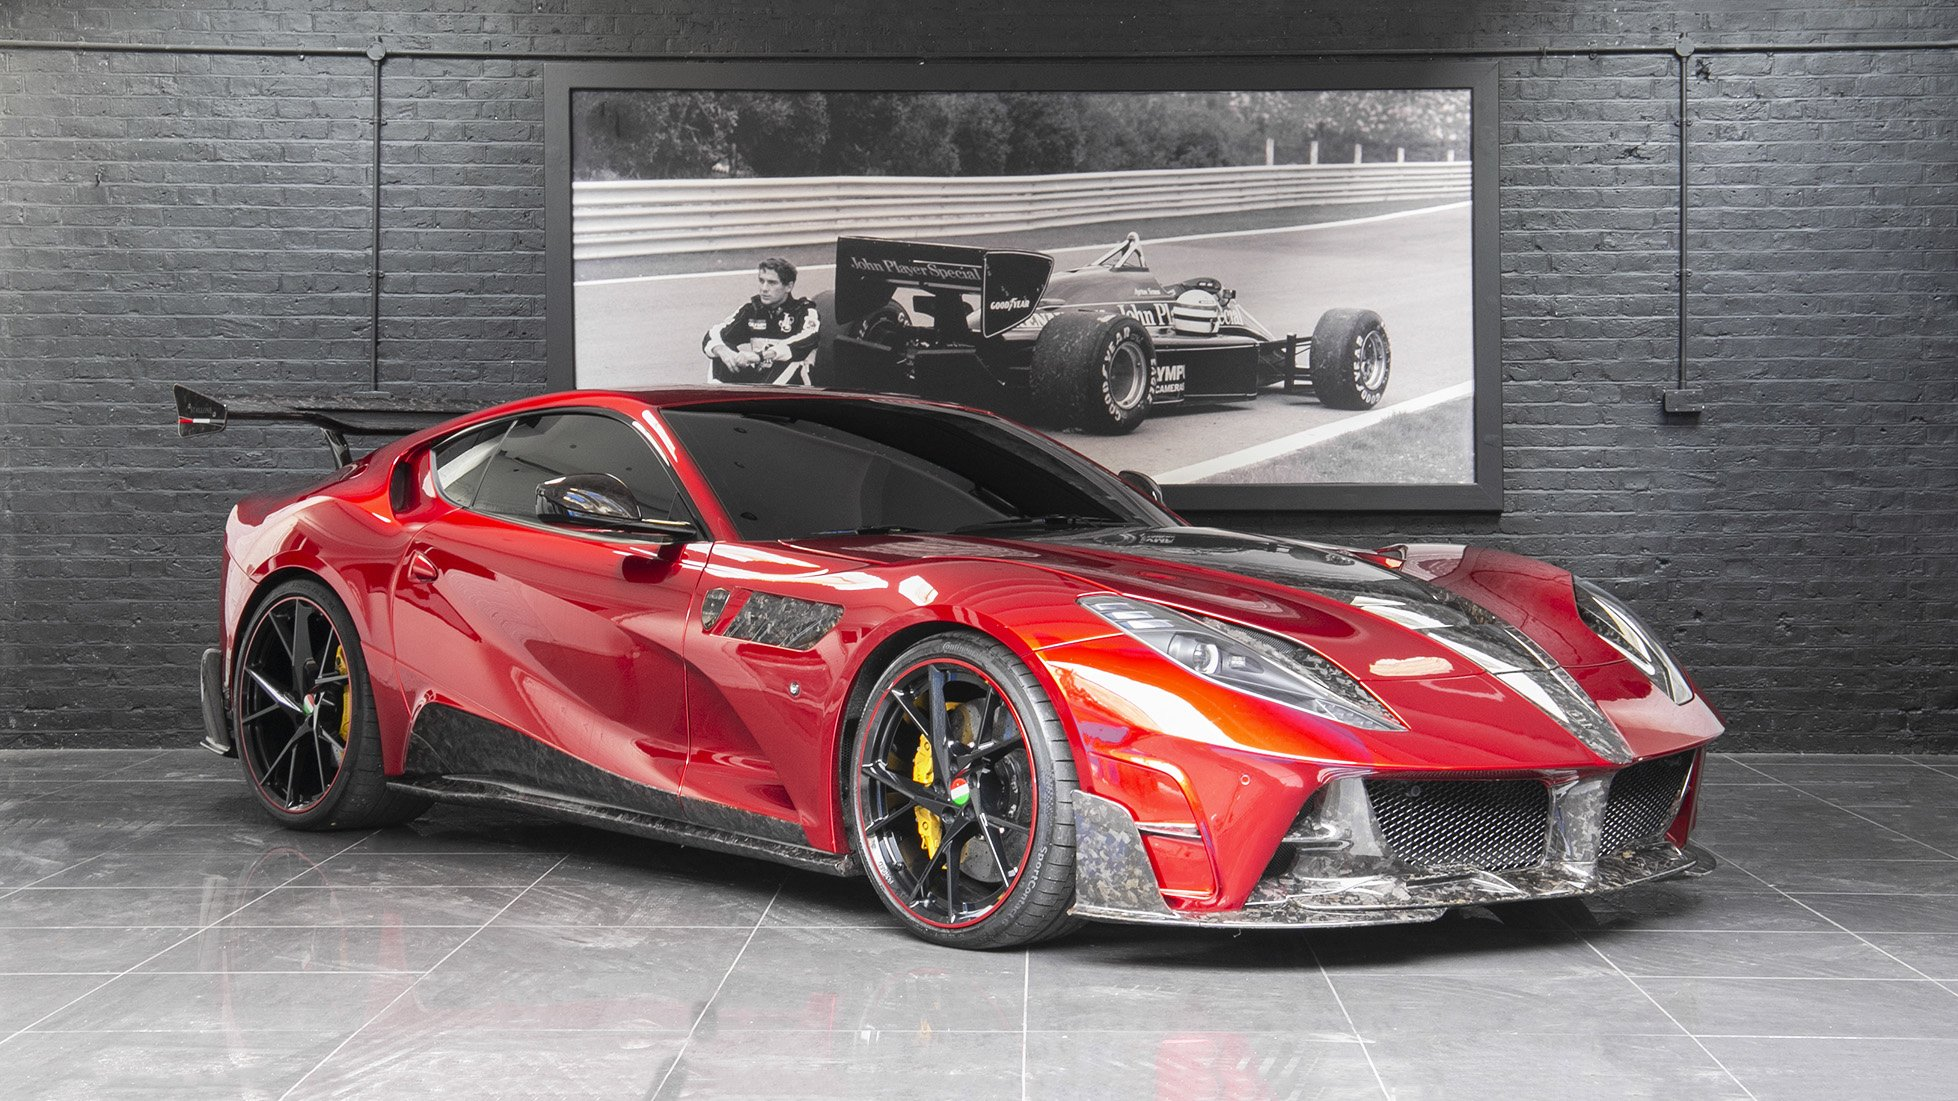 Ferrari 812 Superfast Body Kit